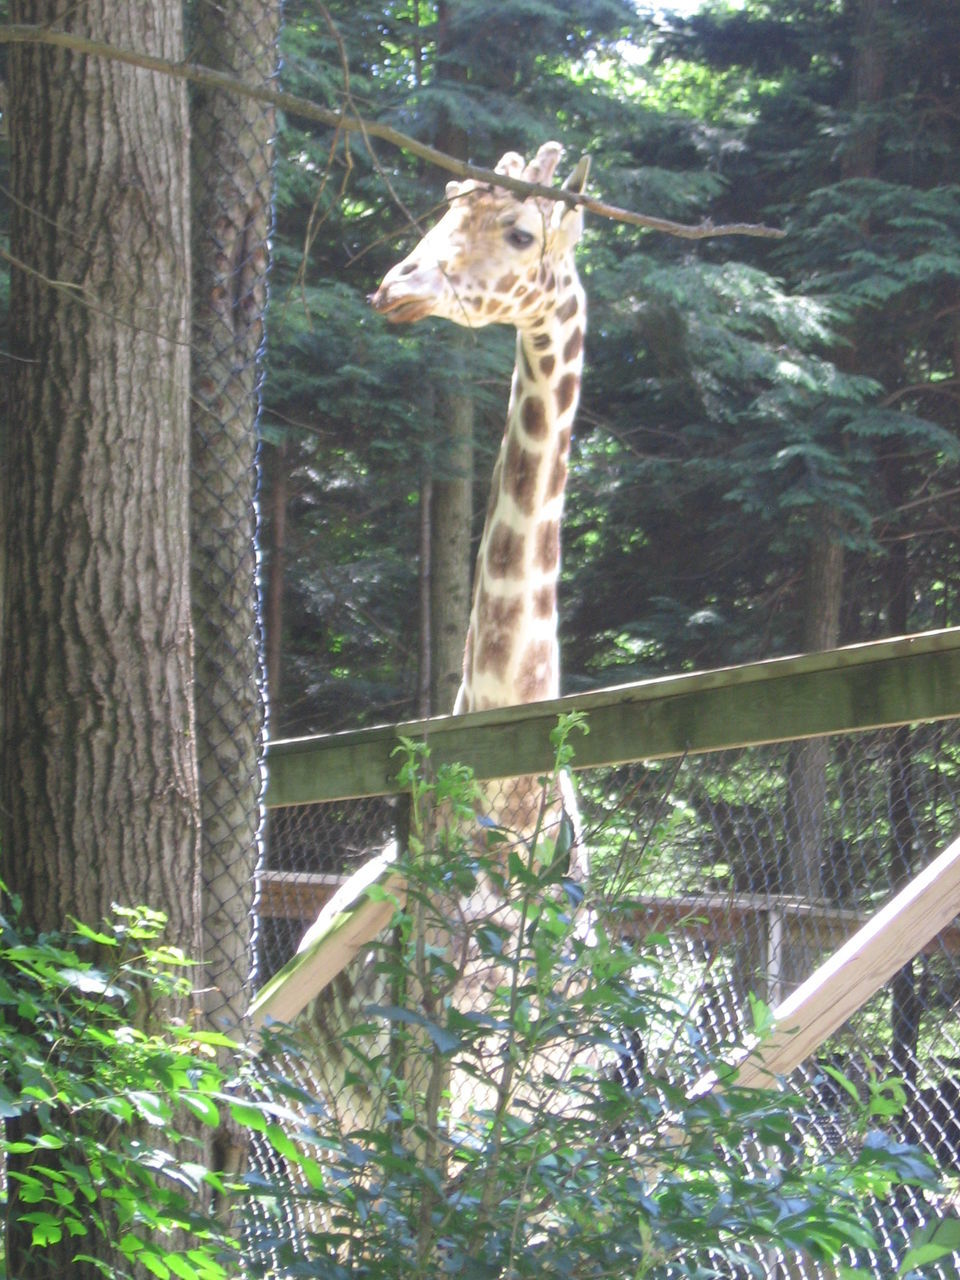 animal themes, tree, one animal, animals in the wild, mammal, animal wildlife, giraffe, zoo, day, no people, low angle view, tree trunk, outdoors, nature